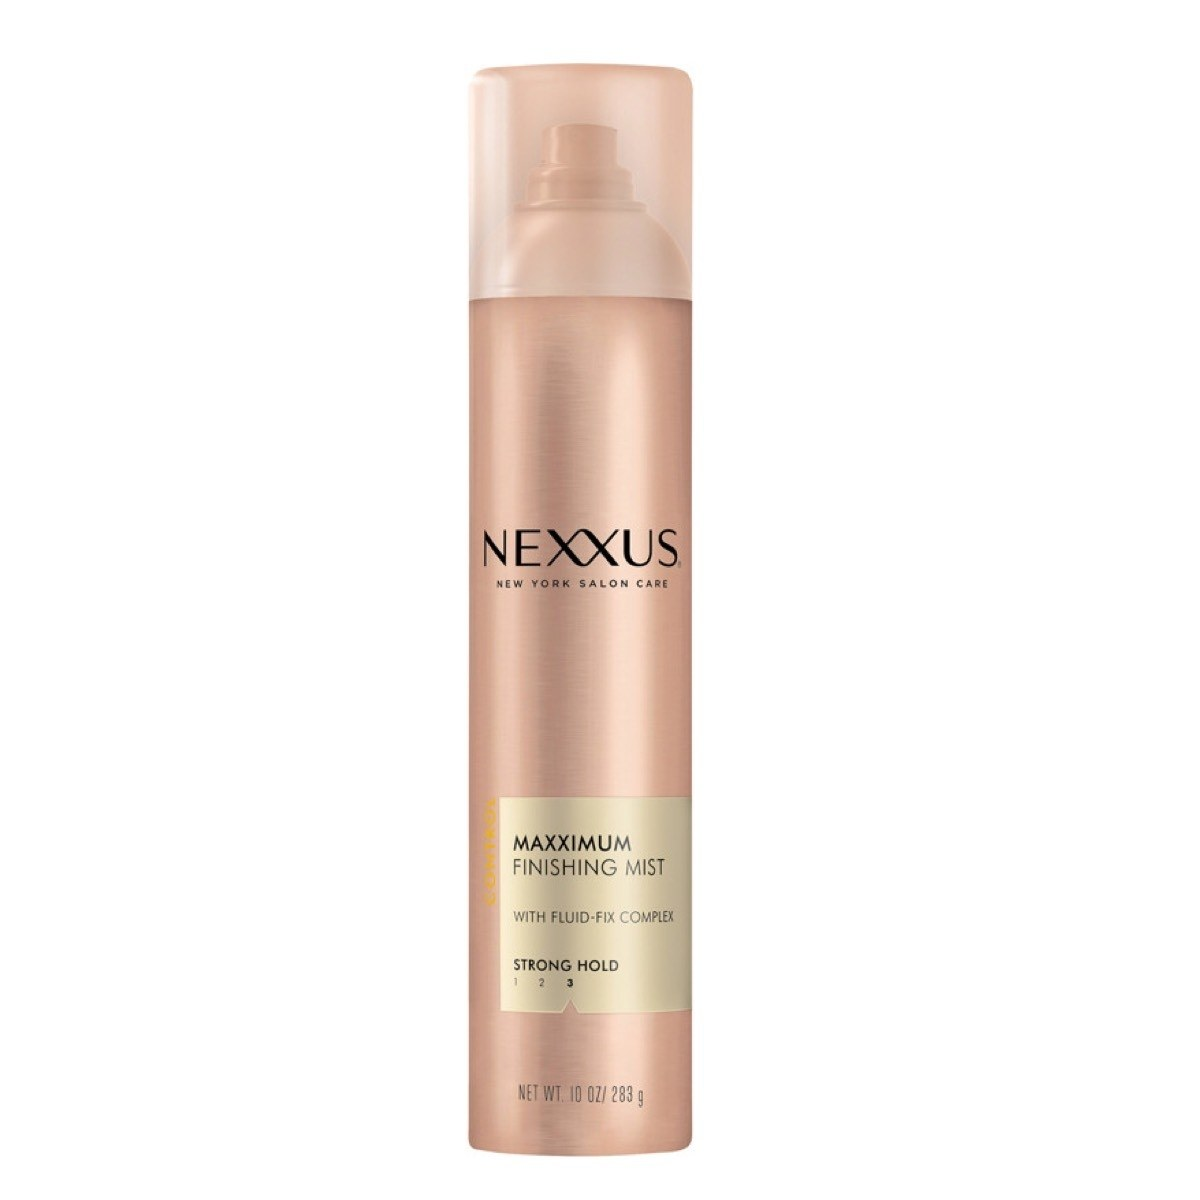 Nexxus Finishing Mist Hairspray